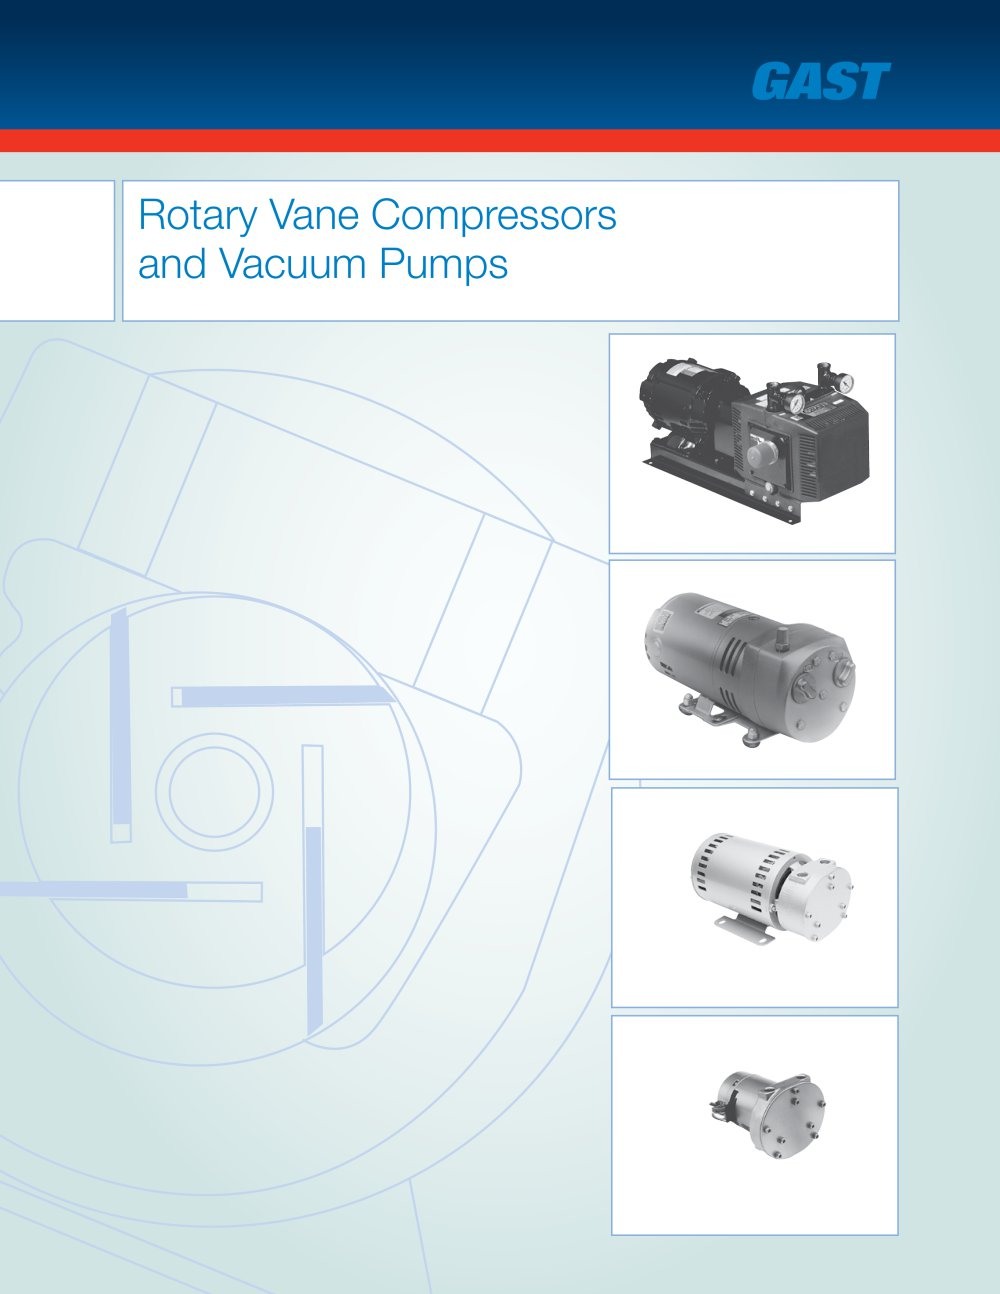 Vacuum Pump Wiring Diagram Schematic Diagrams Volvo Gast Data Base Idle Air Control Valve Rotary